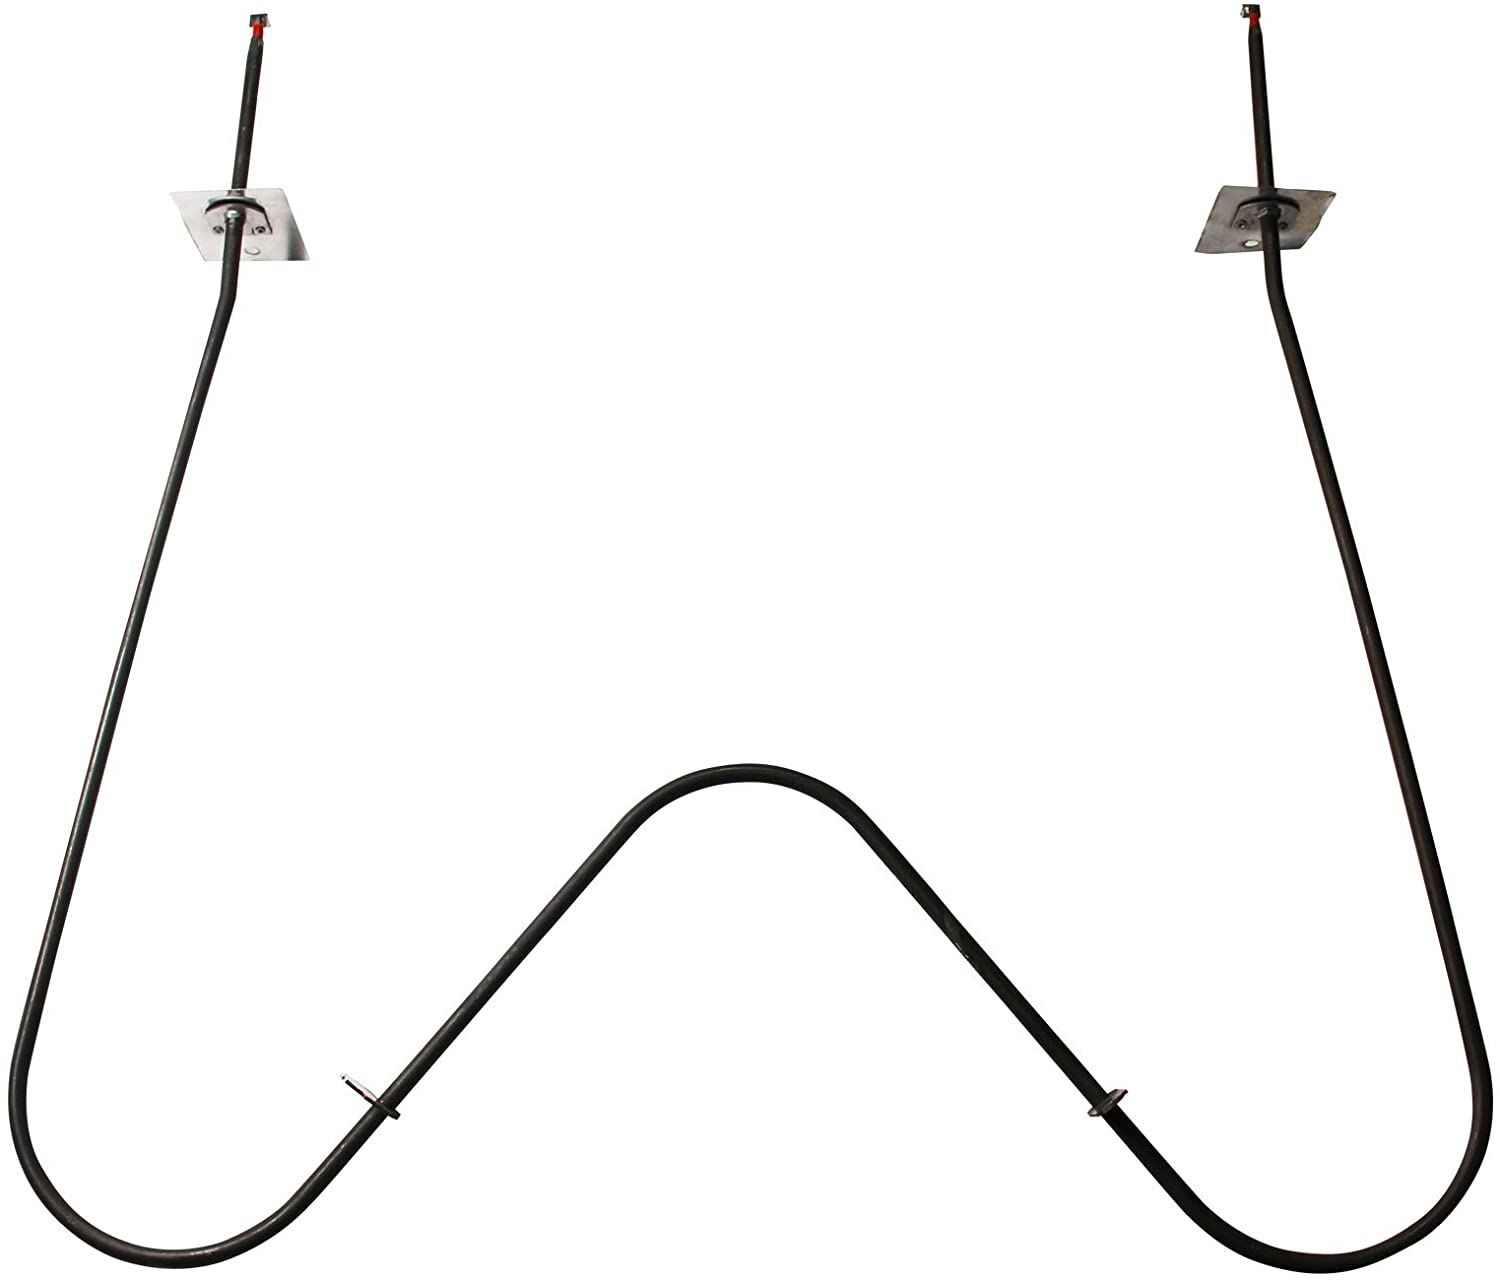 Replacement for Kenmore/Sears 6289398290 Bake Element - Compatible with Kenmore/Sears 5303051519 Oven Heating Element